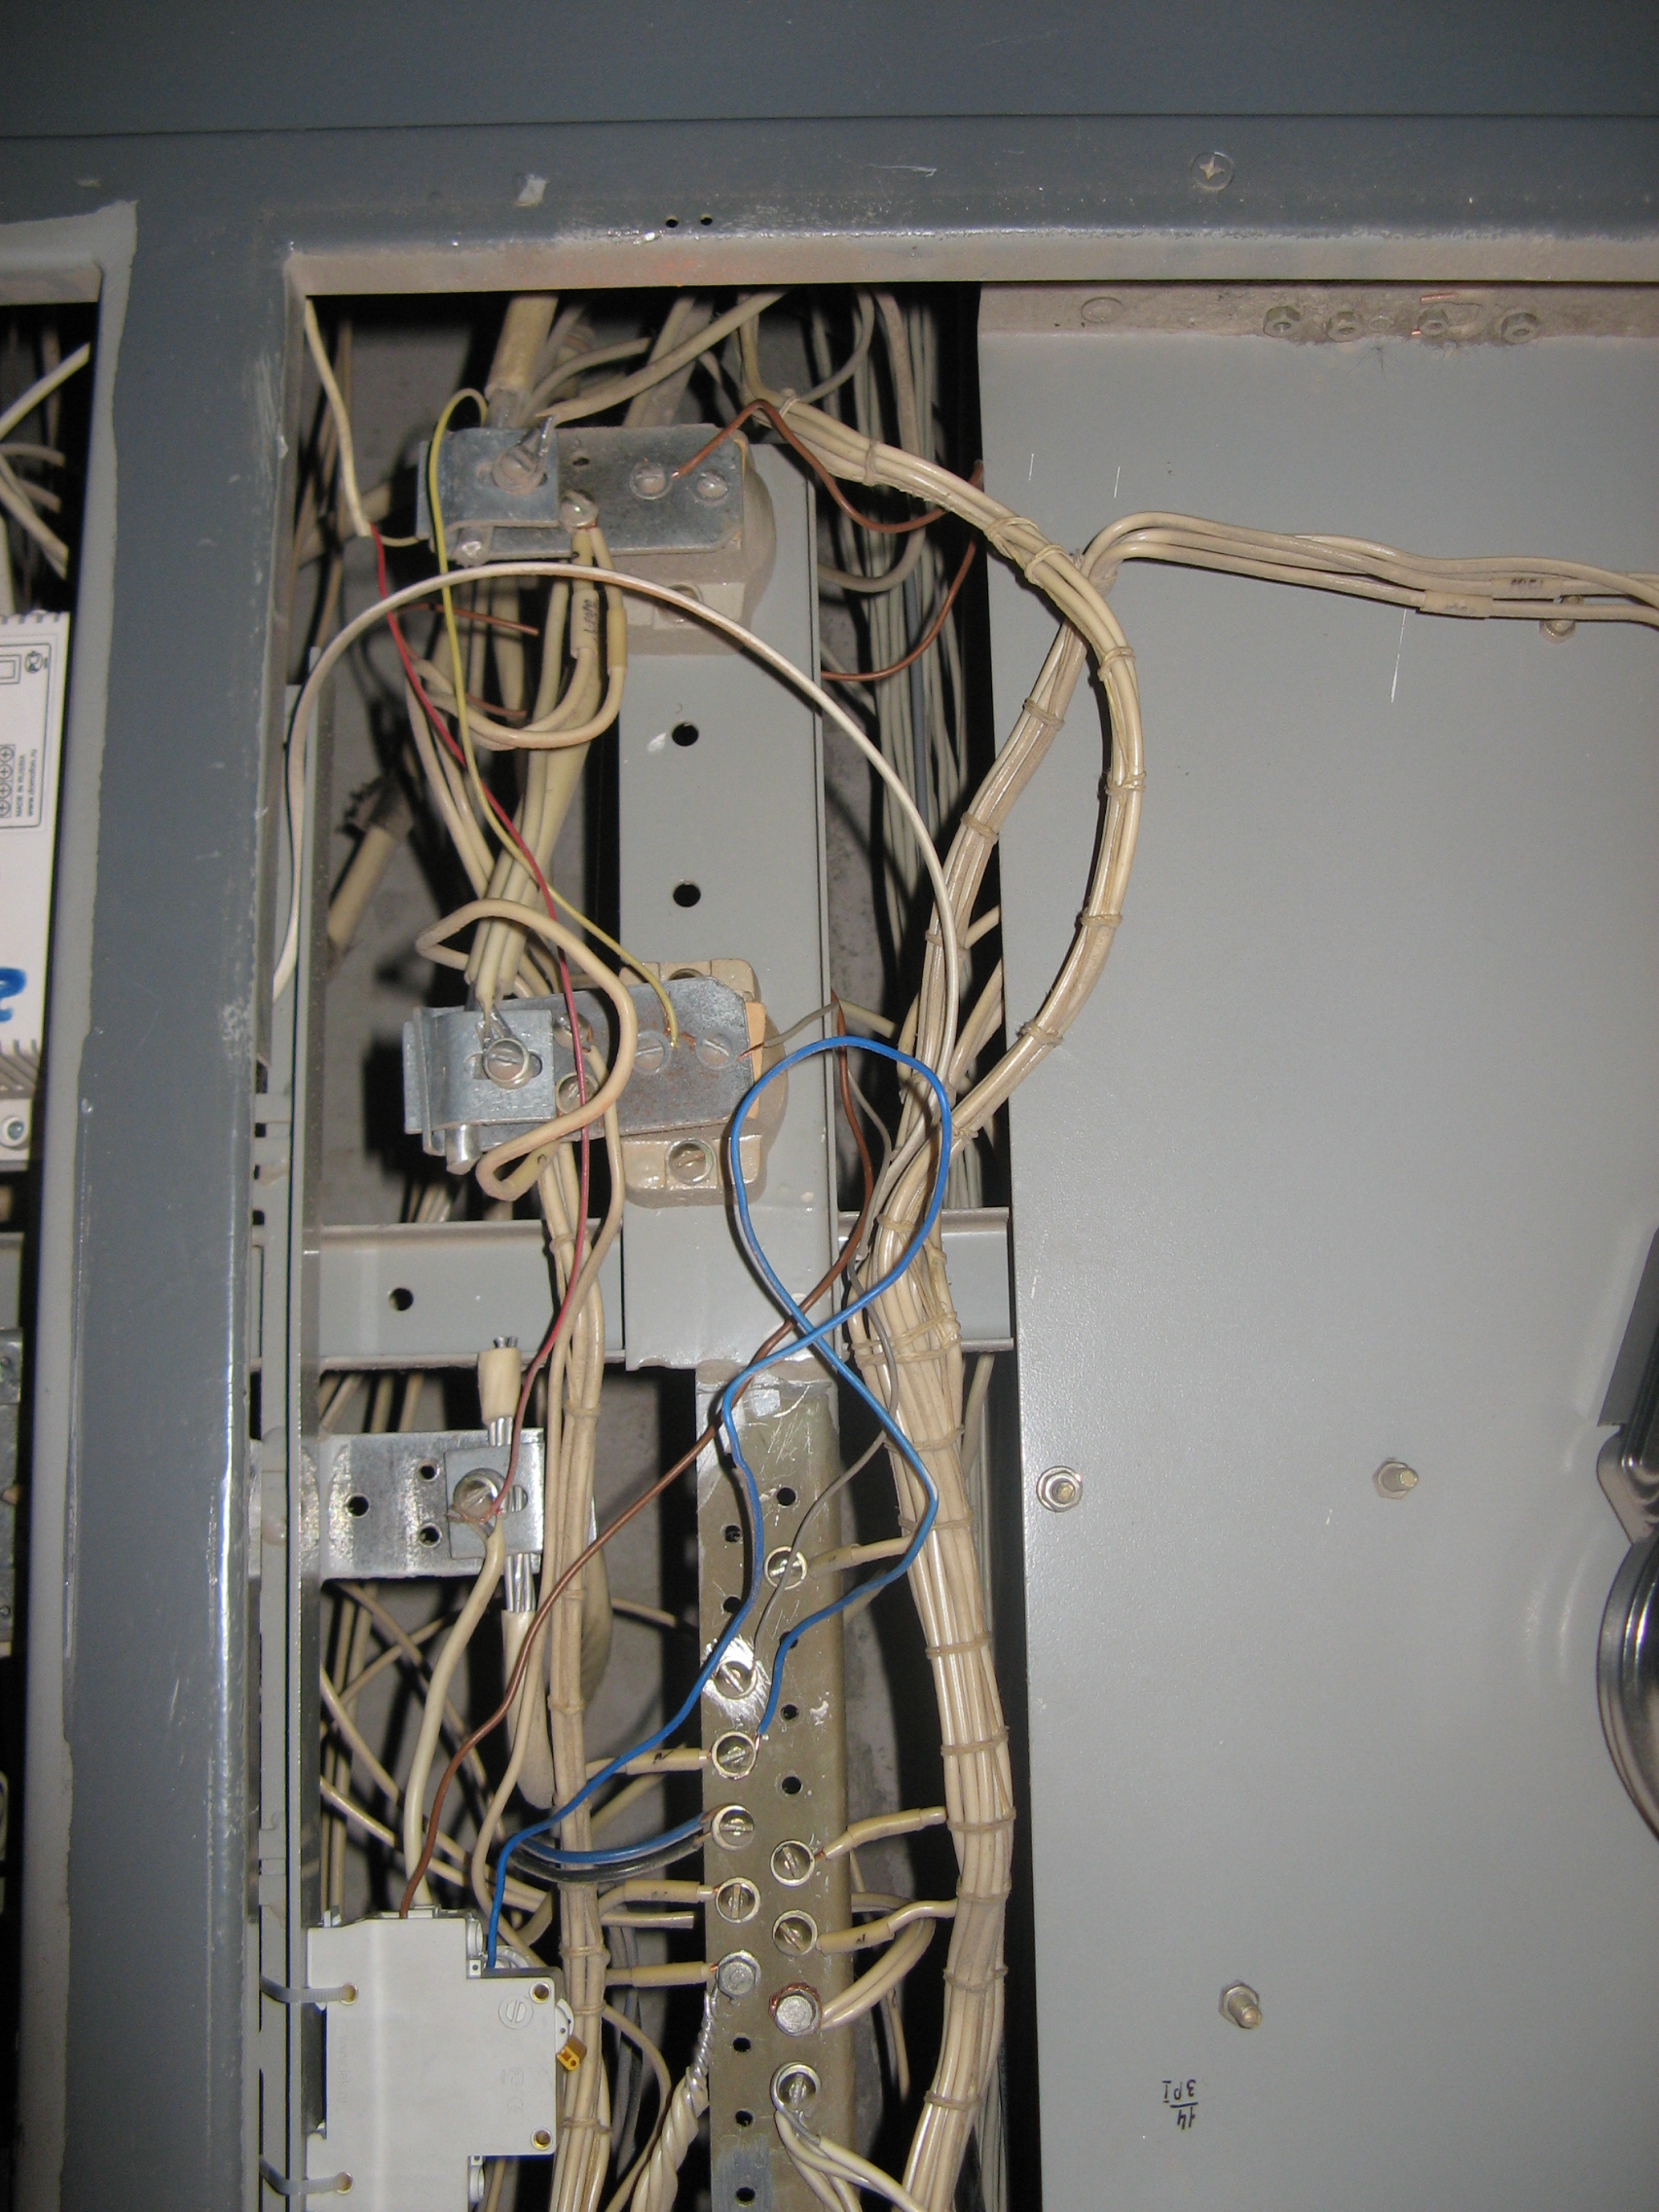 Filepersons Without Brian Assembled Tn C In Old Soviet Fuse Box Electrical Boxes Many Years